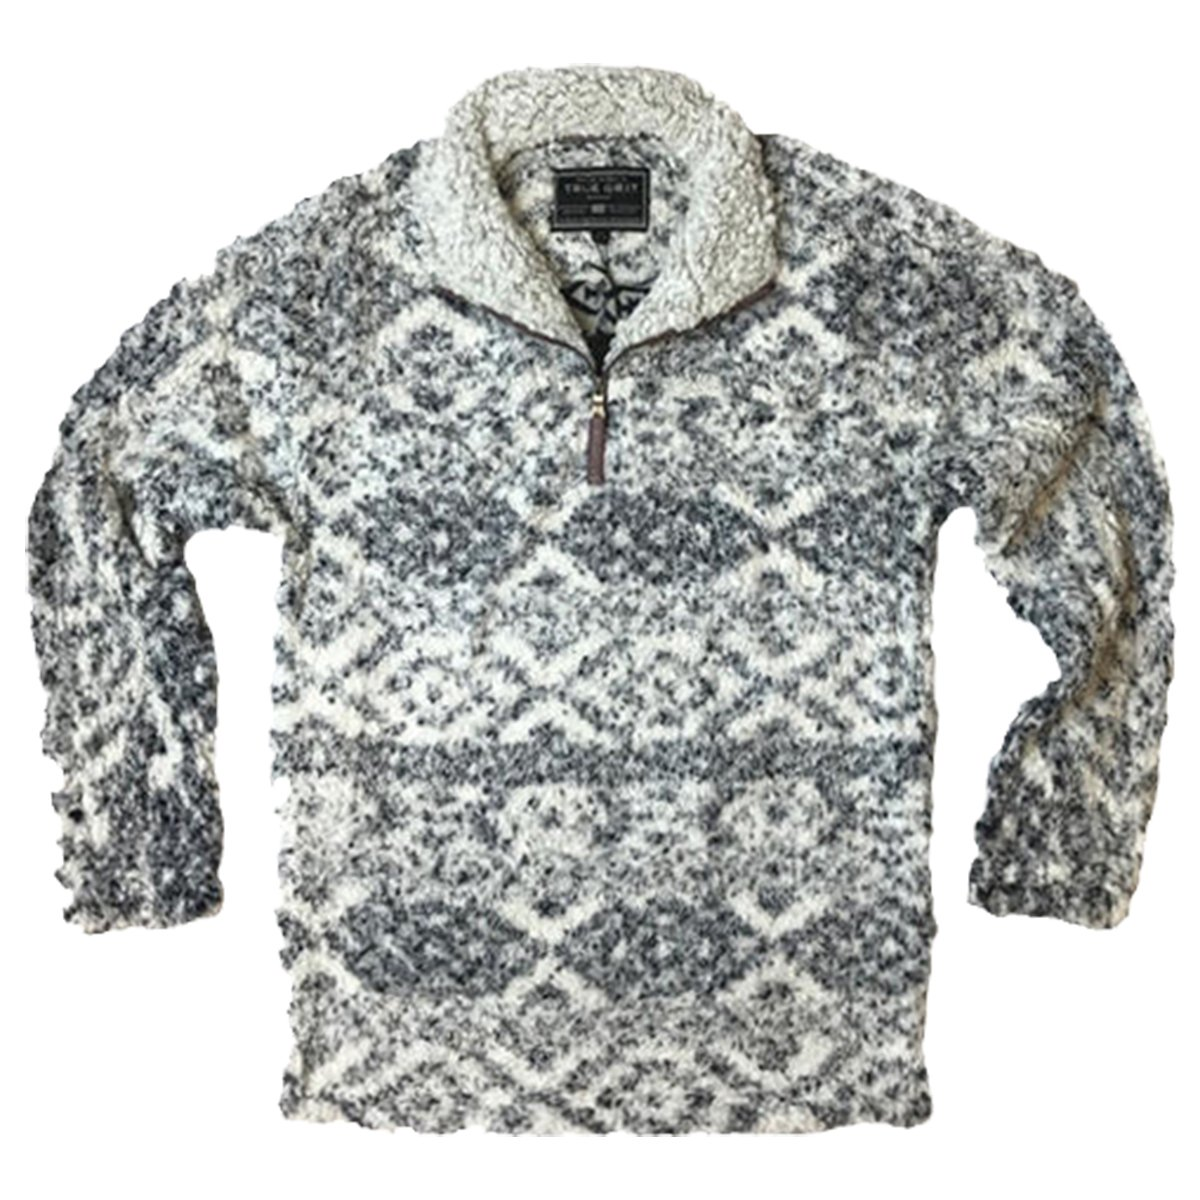 True Grit Men's Frosty Tipped Pile 1/4 Zip Pullover, Tribal Putty, L by True Grit (Image #1)